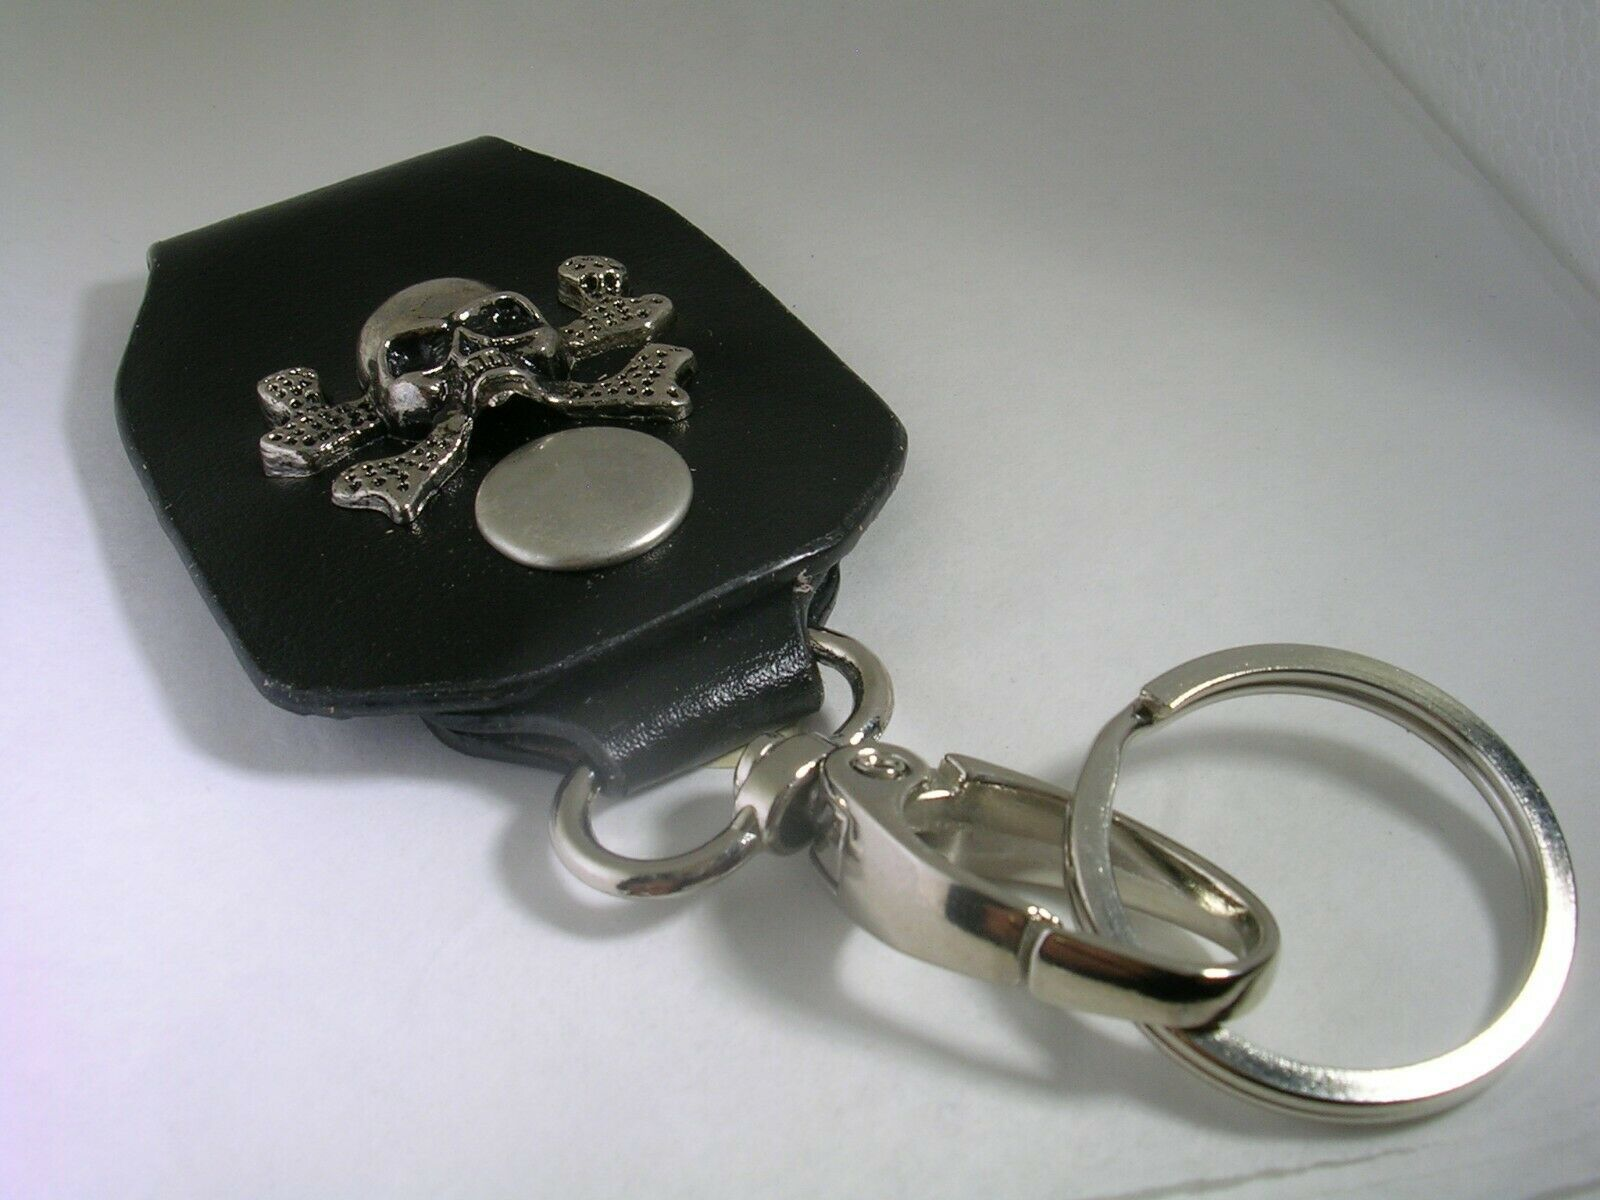 Primary image for SKULL & BONES LEATHER KEY CHAIN WITH A HIGH POLISHED FINISH IN STAINLESS STEEL